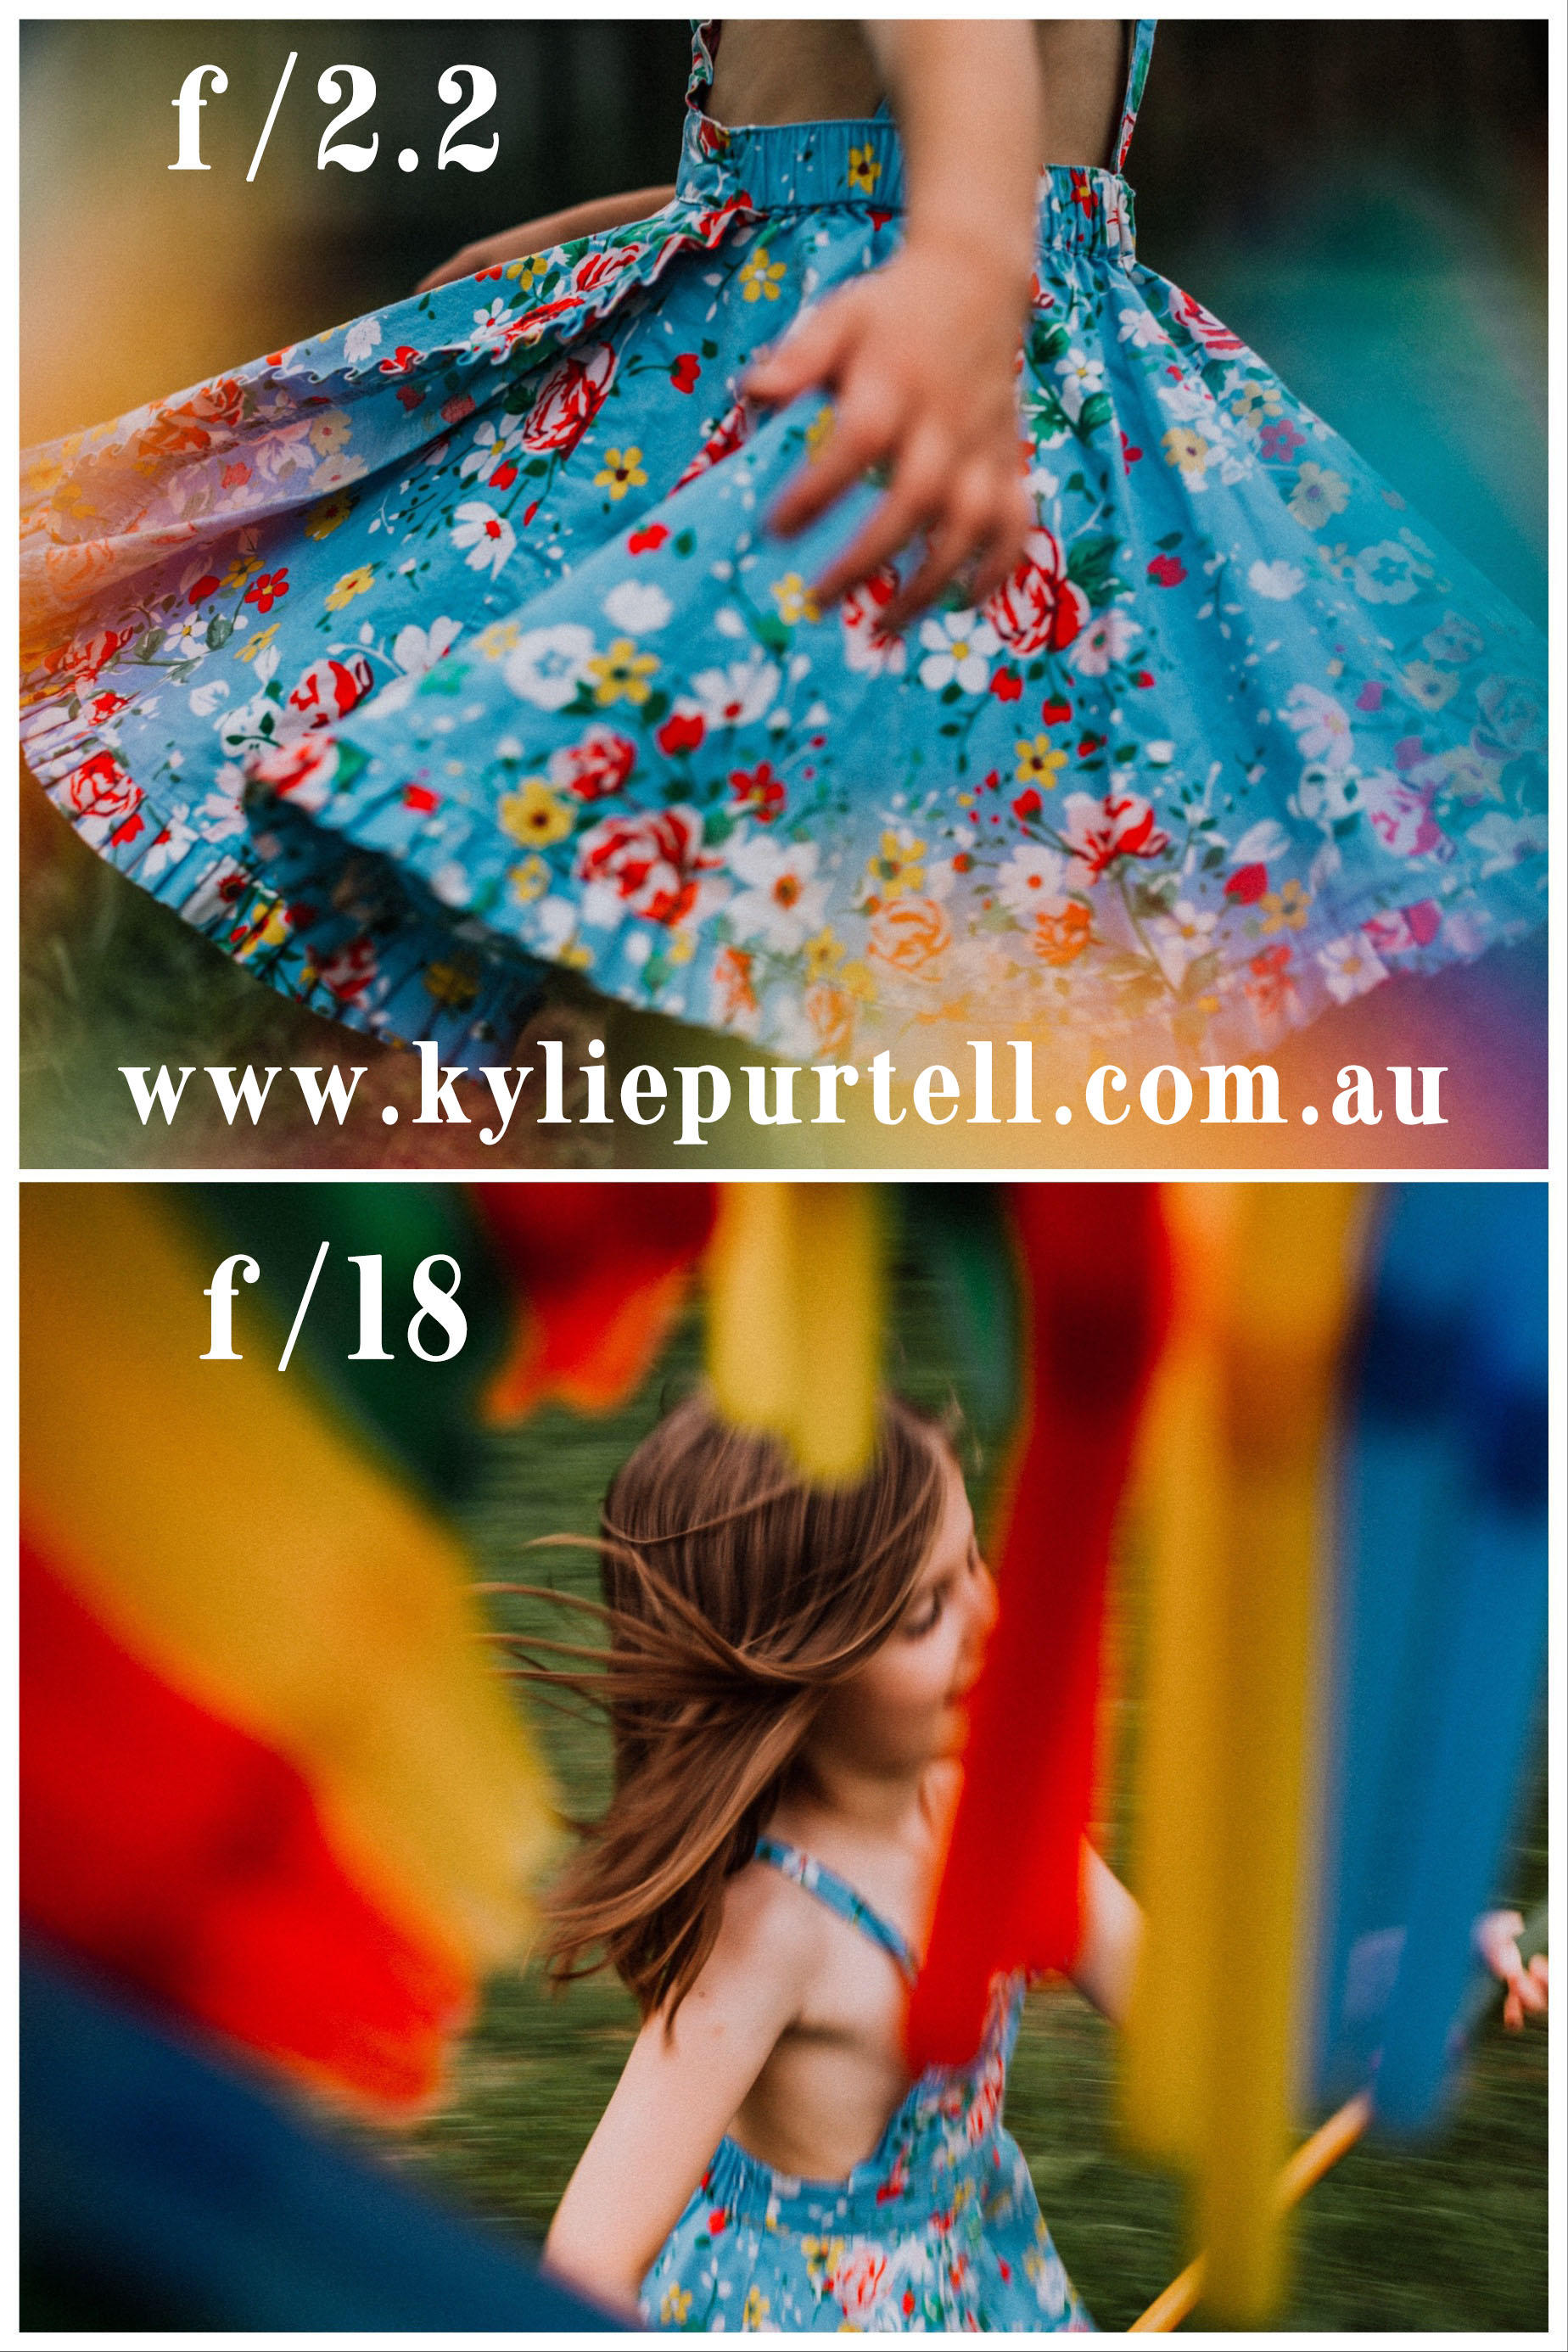 How to create a light-leak effect with your DSLR Kylie Purtell copy.jpg